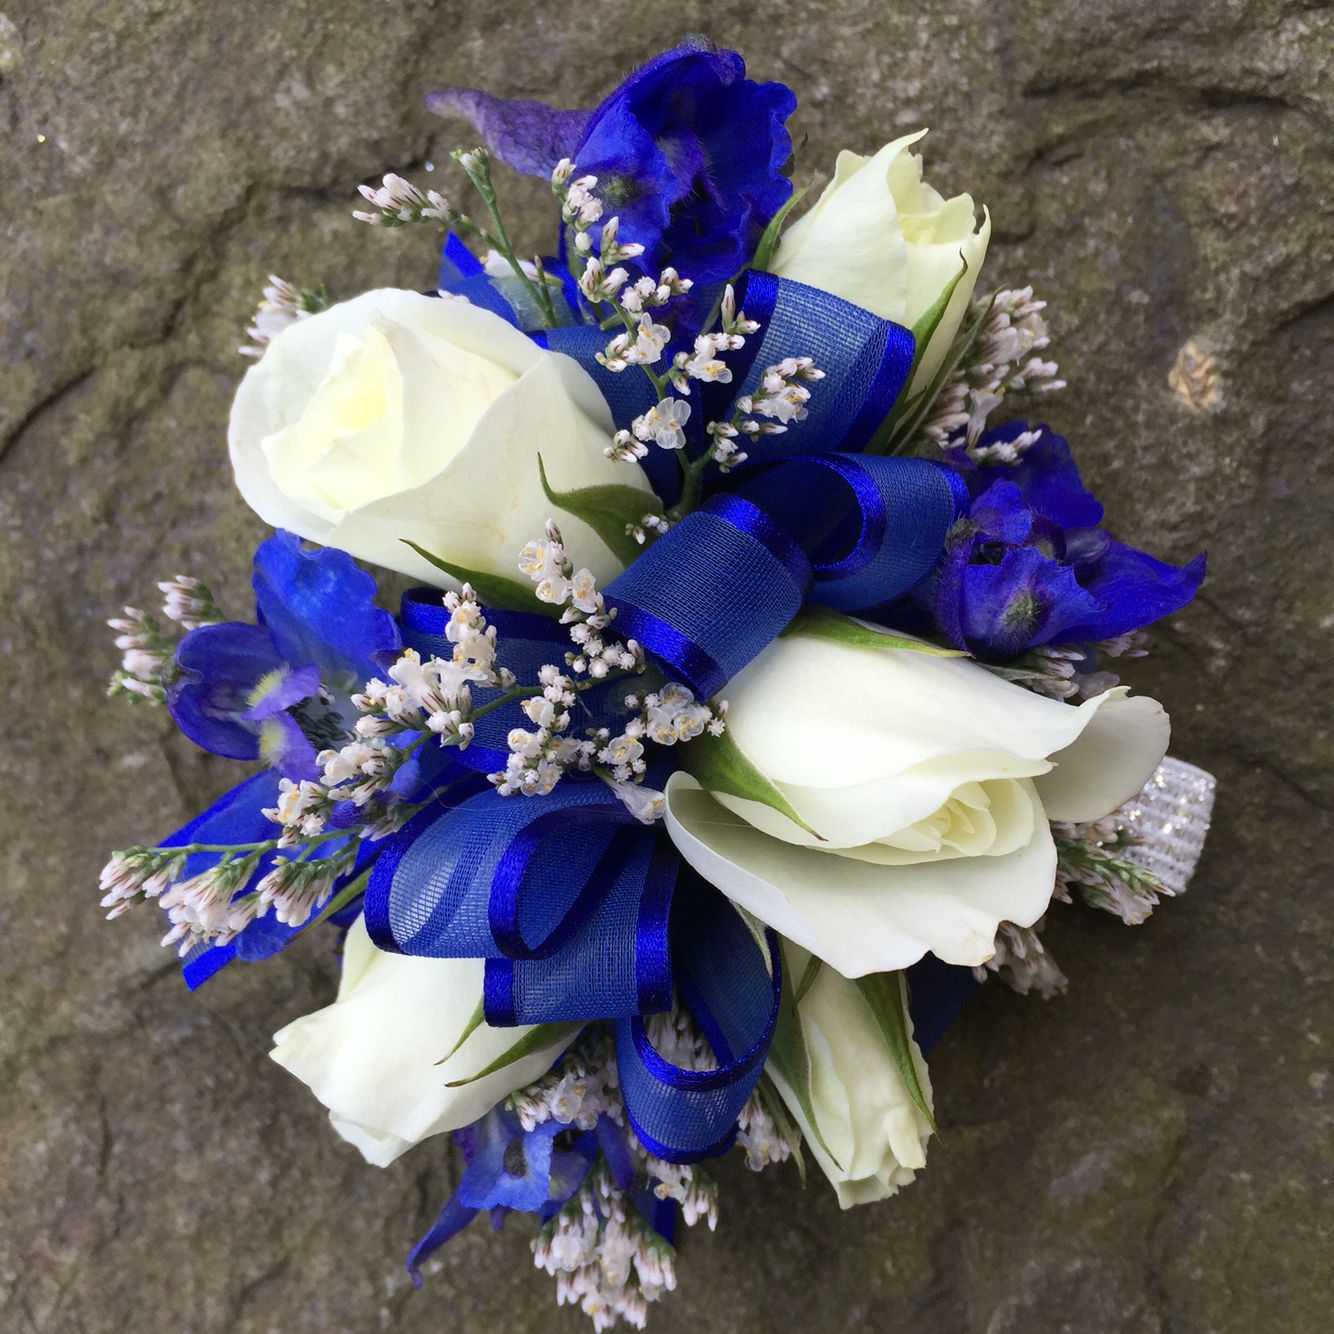 White spray rose with royal blue prom corsage wedding bouquets white spray rose with royal blue prom corsage izmirmasajfo